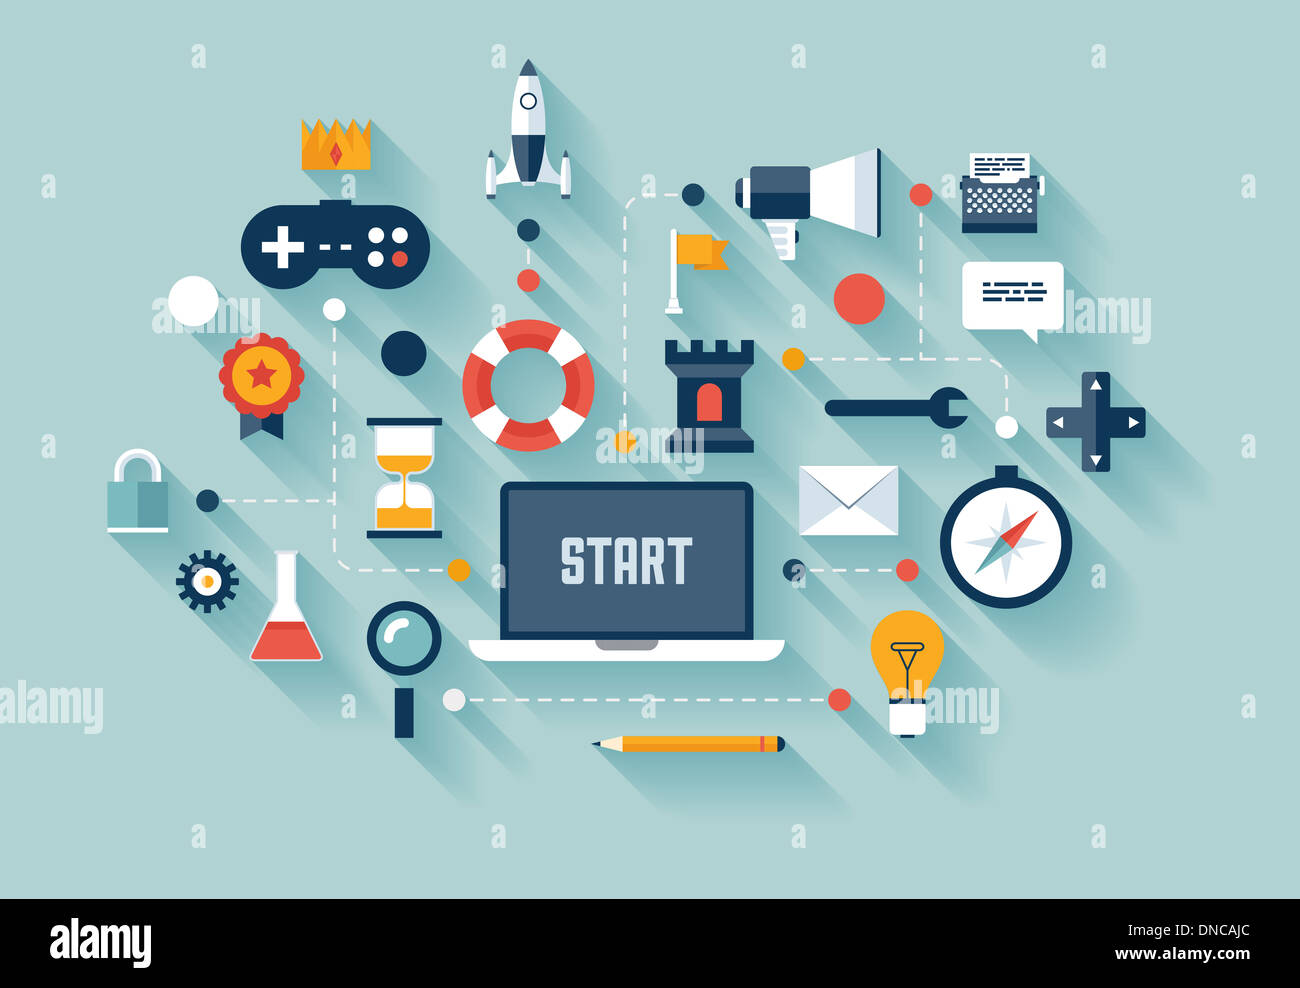 Flat design illustration concept of gamification strategy in business, new trend in social media marketing and life innovation - Stock Image